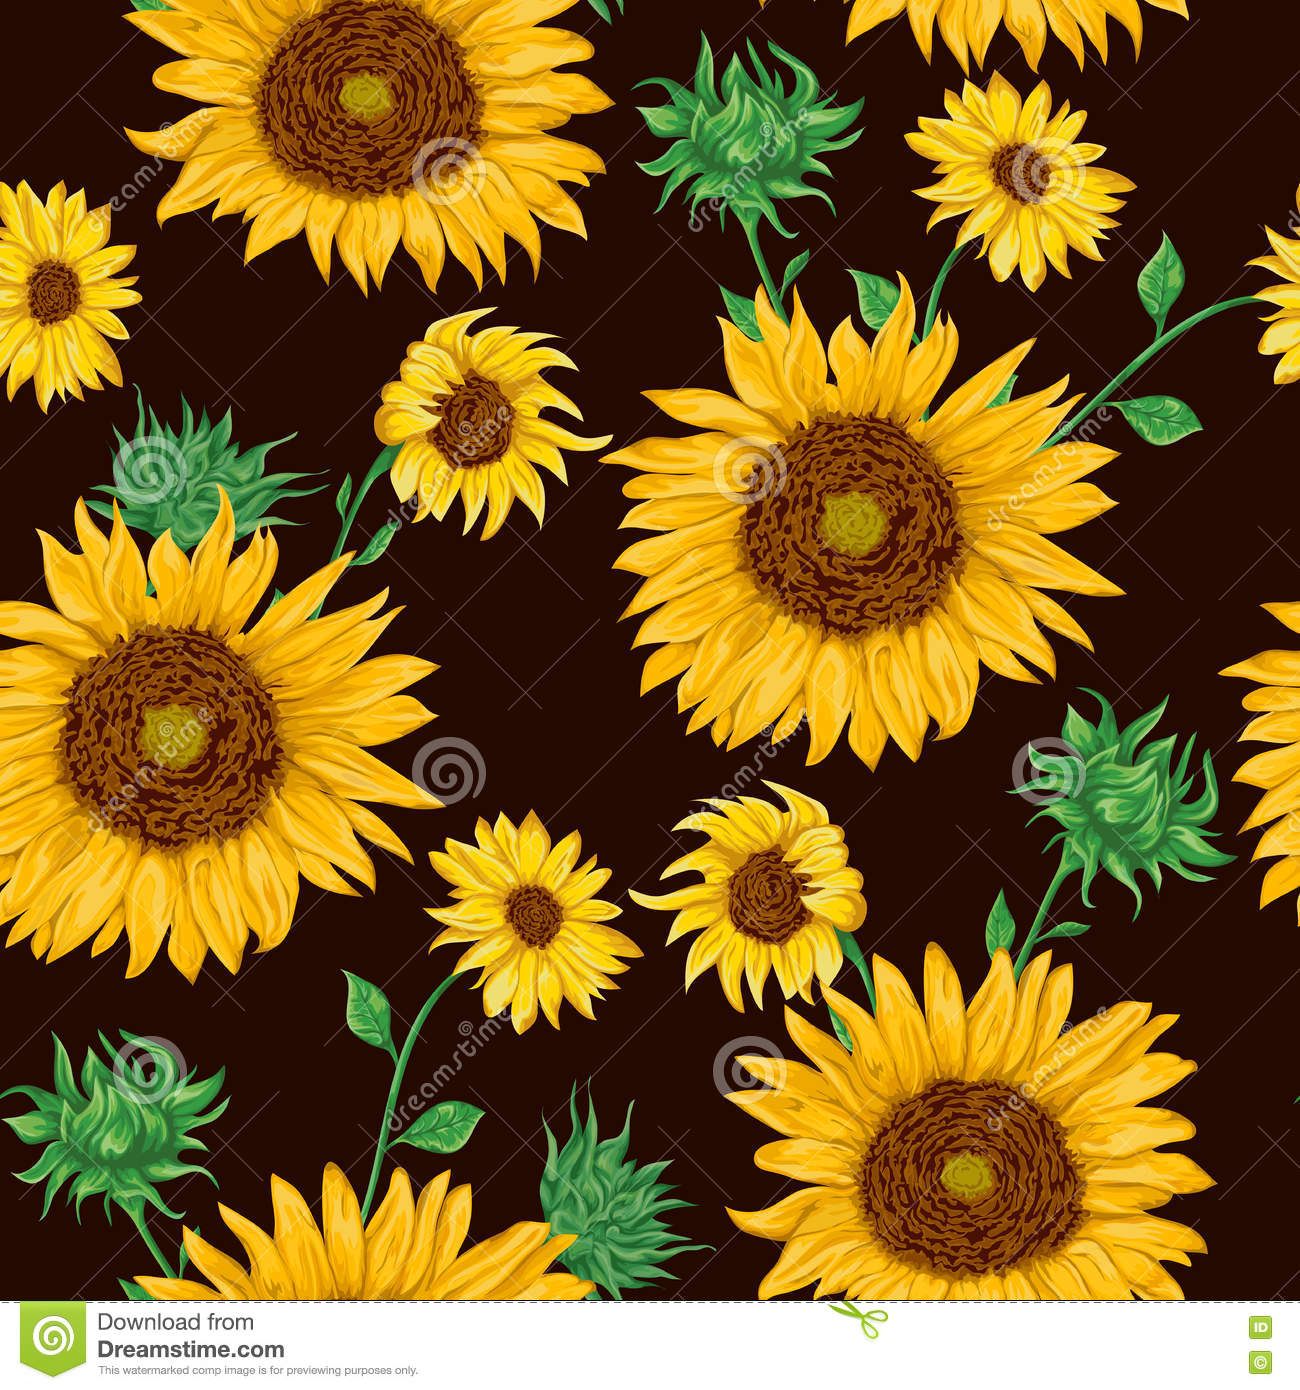 seamless pattern sunflowers black background collection decorative floral design elements flowers buds leaf vintage 80933041